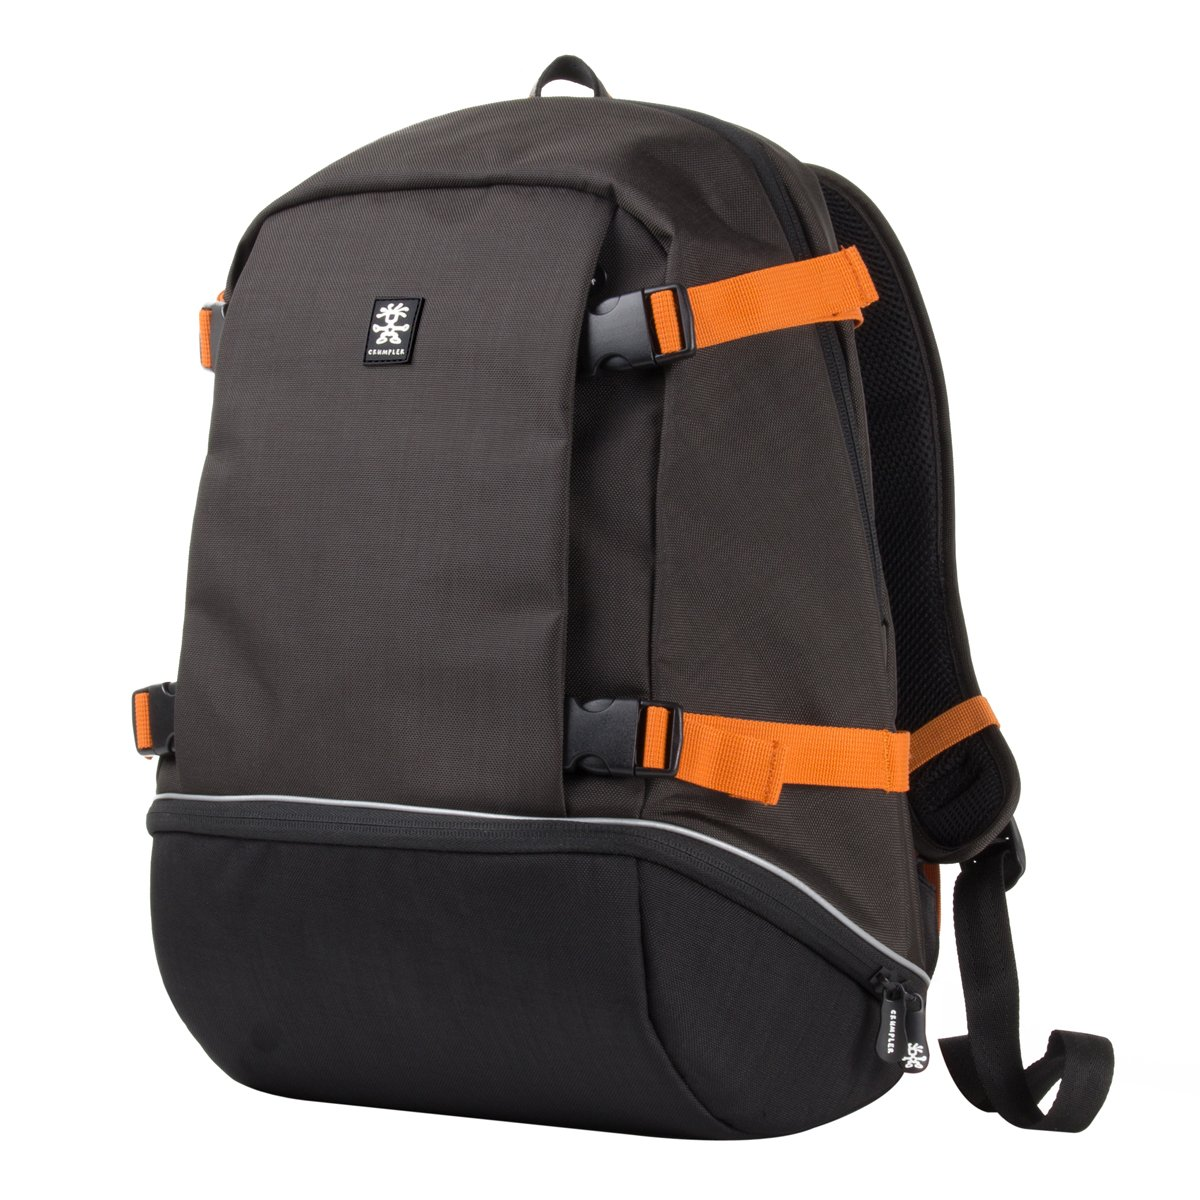 CRUMPLER Proper Roady half photo - fotobatoh